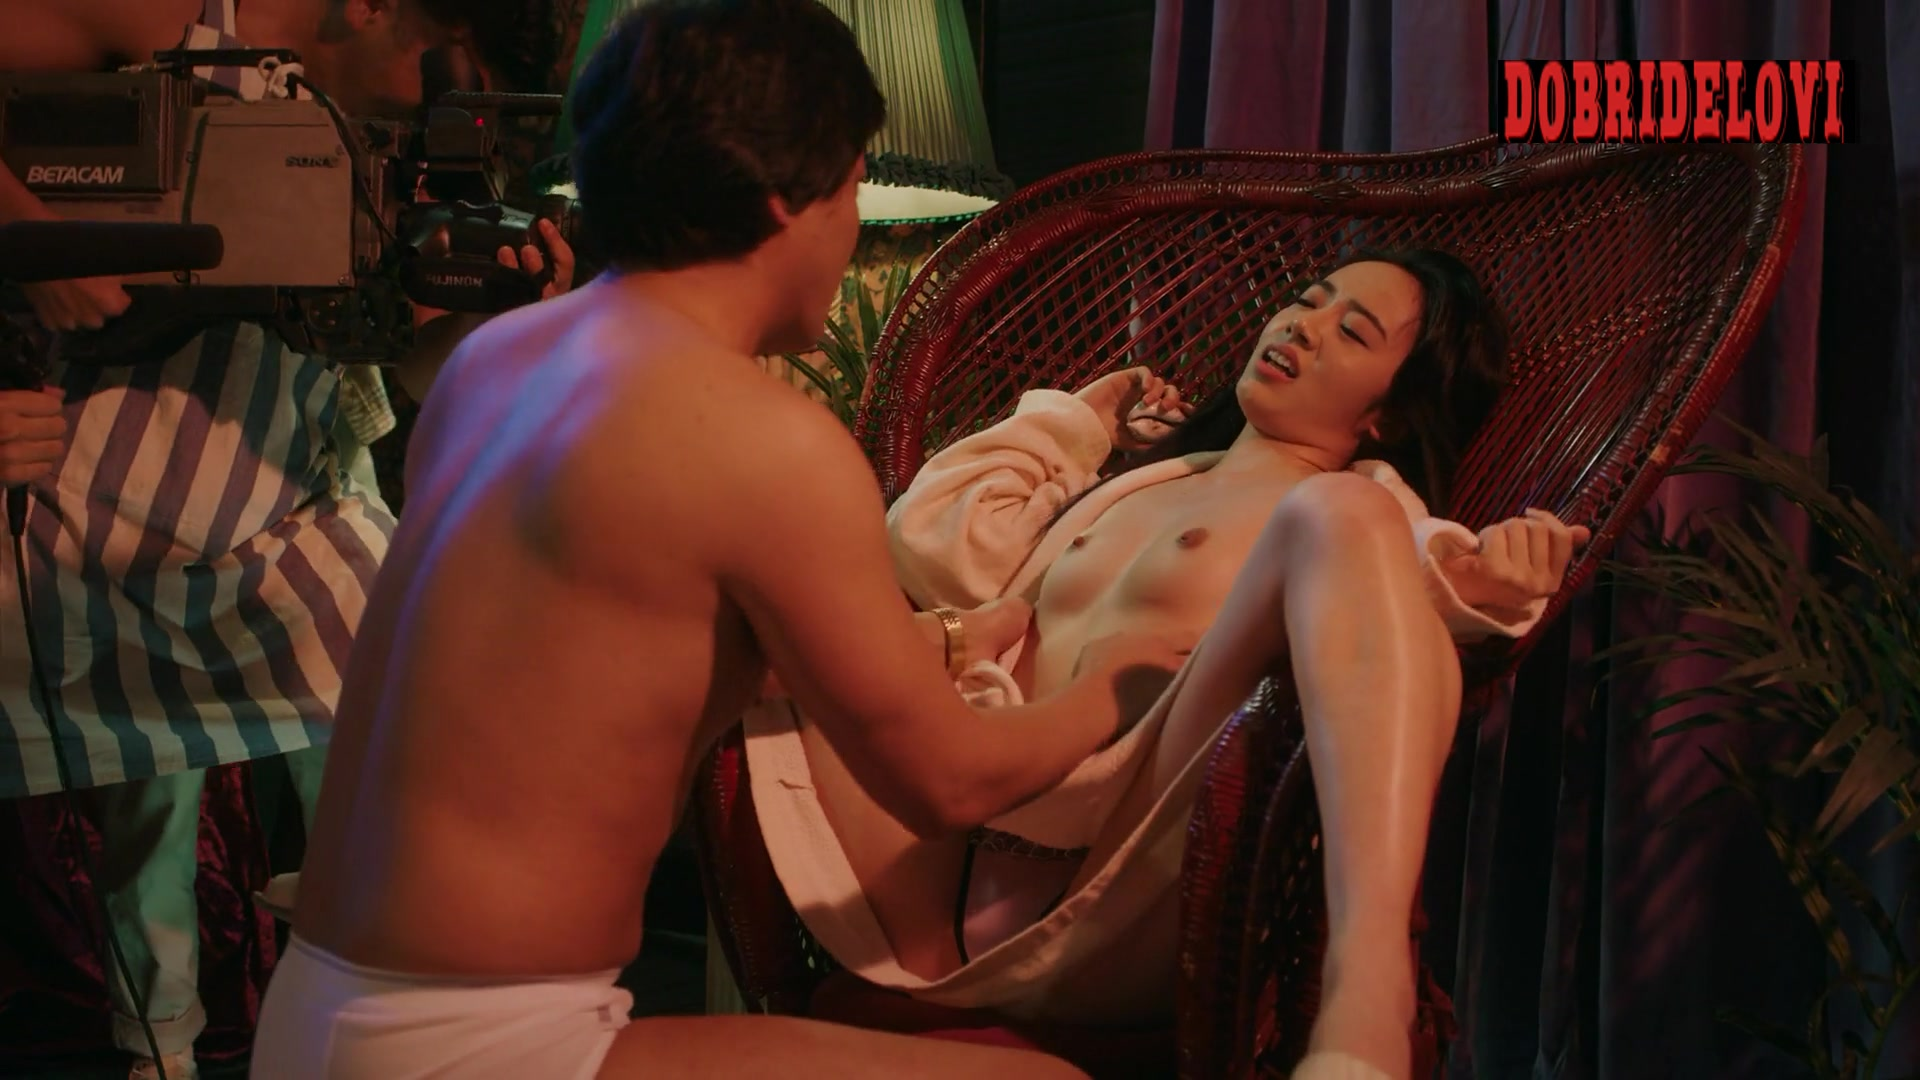 Misato Morita nude and being fingered scene from The Naked Director